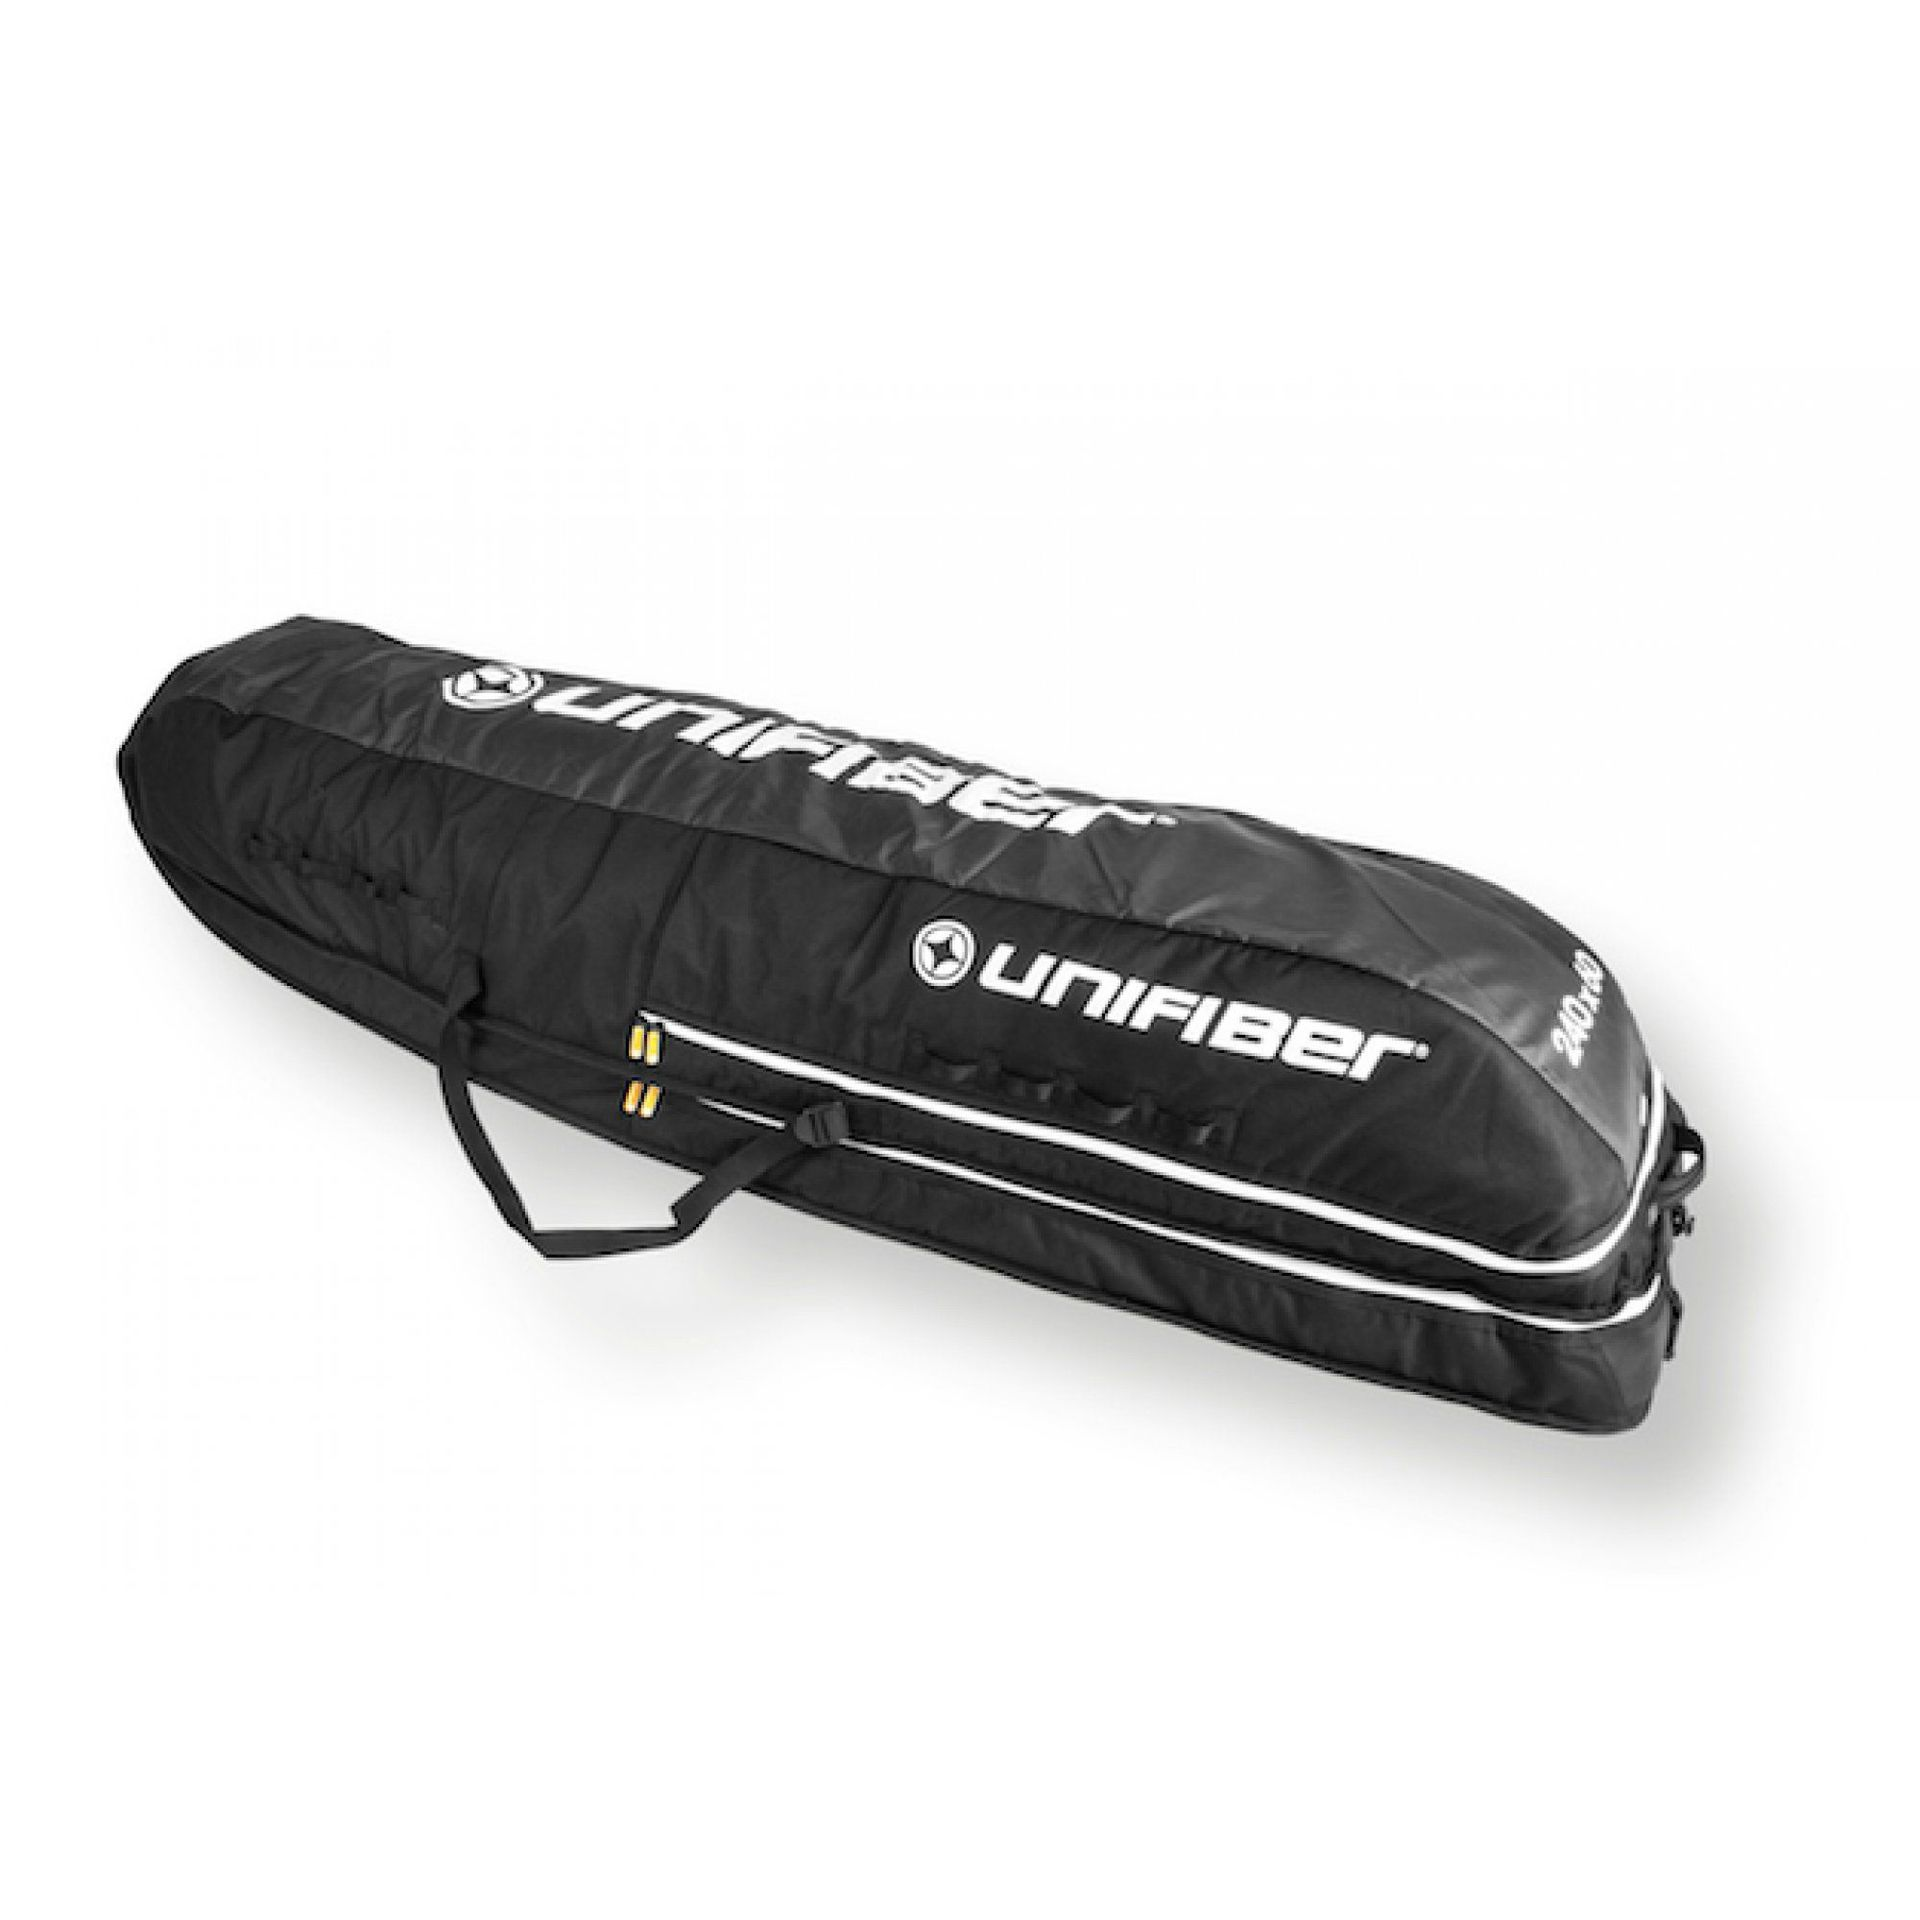 TORBA UNIFIBER  BLACKLINE ROOFRACK BOARD QUIVERBAG